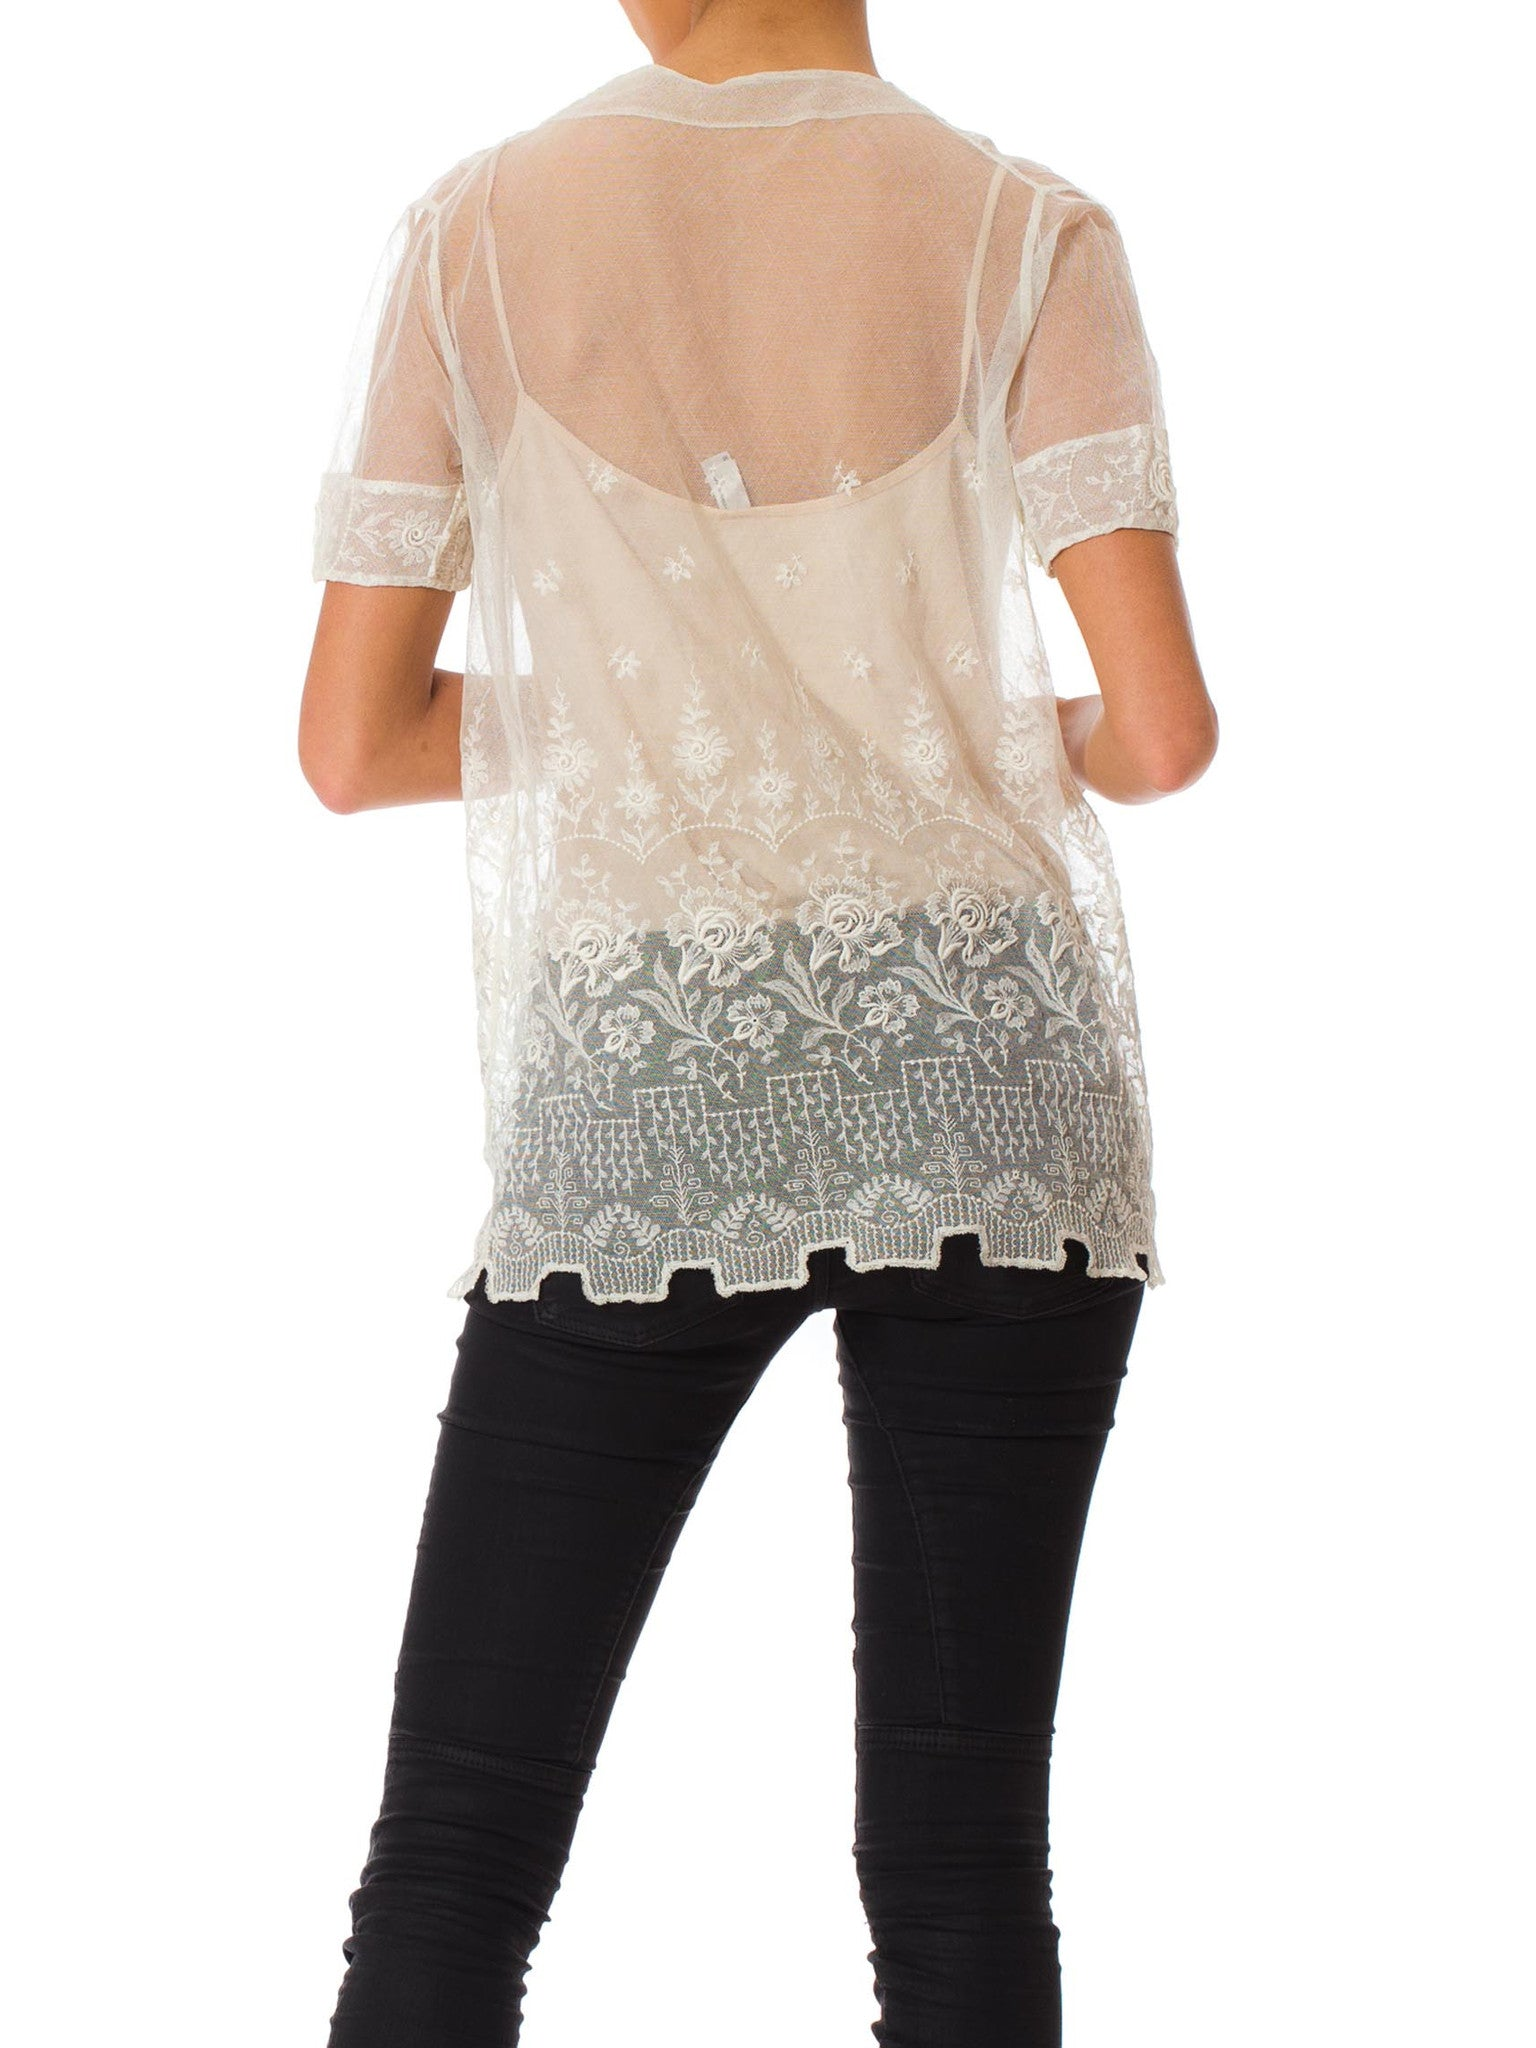 1920S White Cotton Embroidered Tulle Oversized Sheer Top With Van Dyck Hem